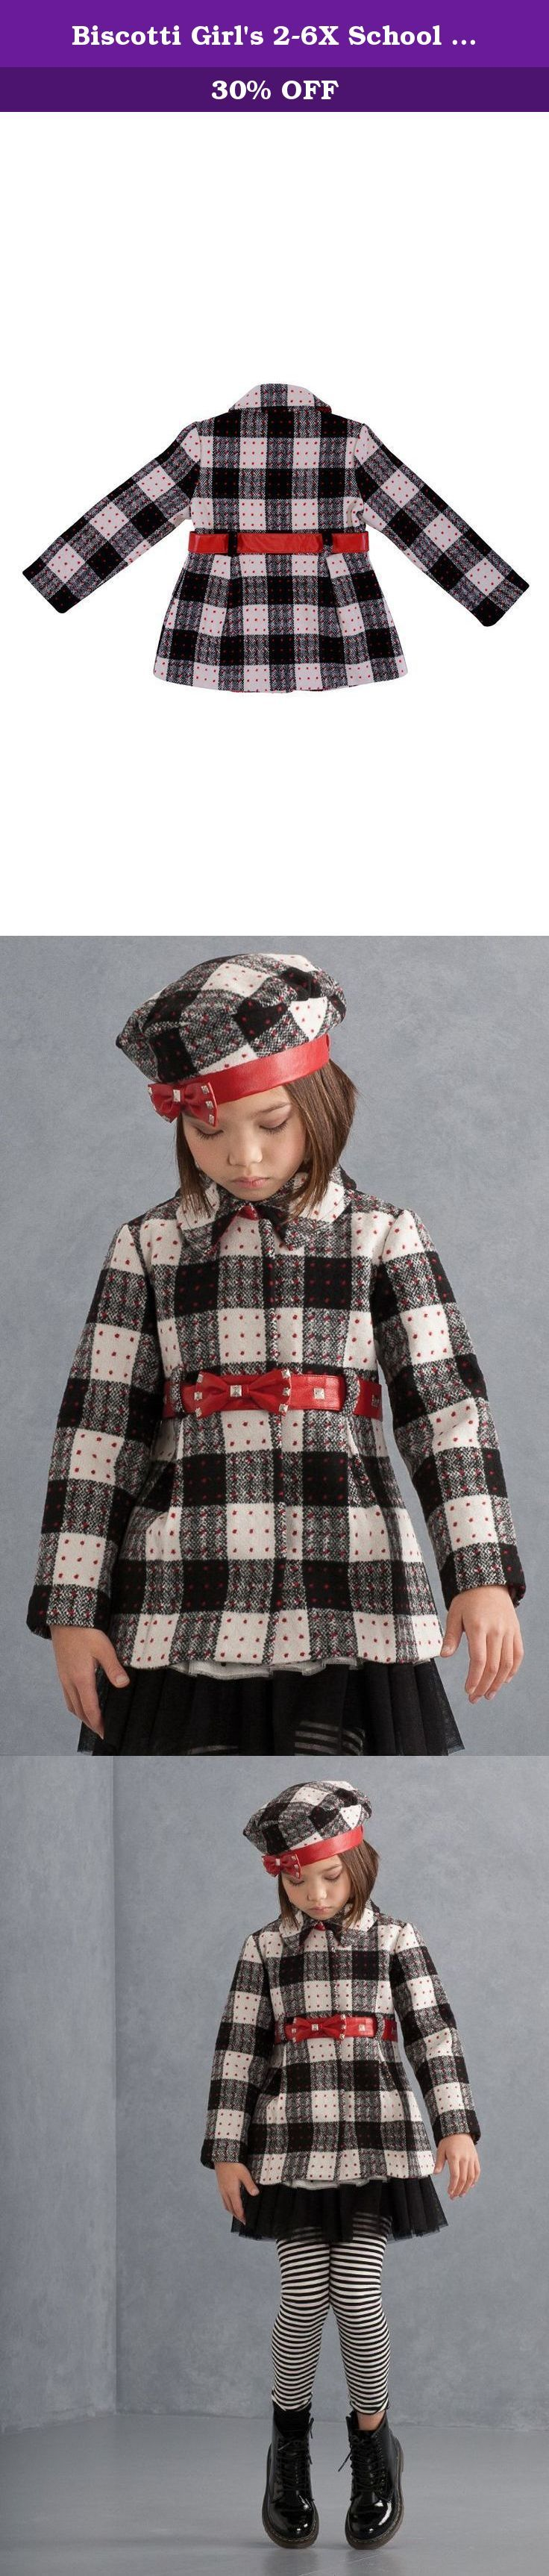 Biscotti Girl's 2-6X School Of Rock Plaid Coat - Size 6X, Black. Scattered silver studs provide a measure of cool to this charming plaid coat with a red pleather bow belt.